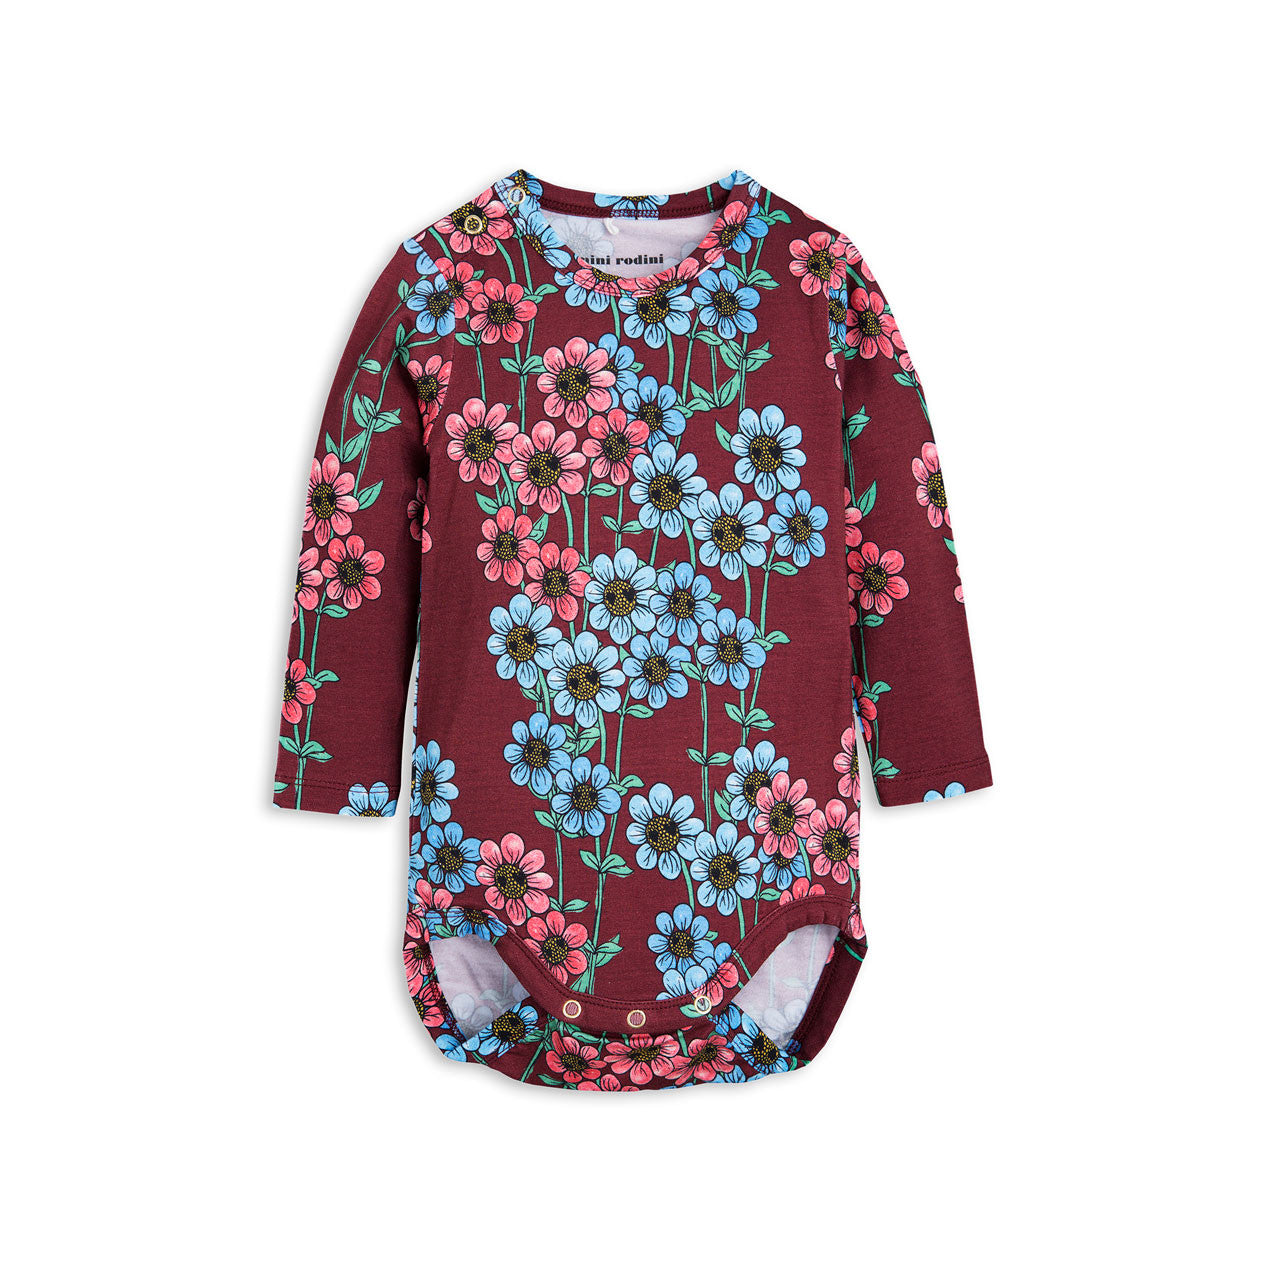 Mini Rodini Daisy LS Body - Ladida